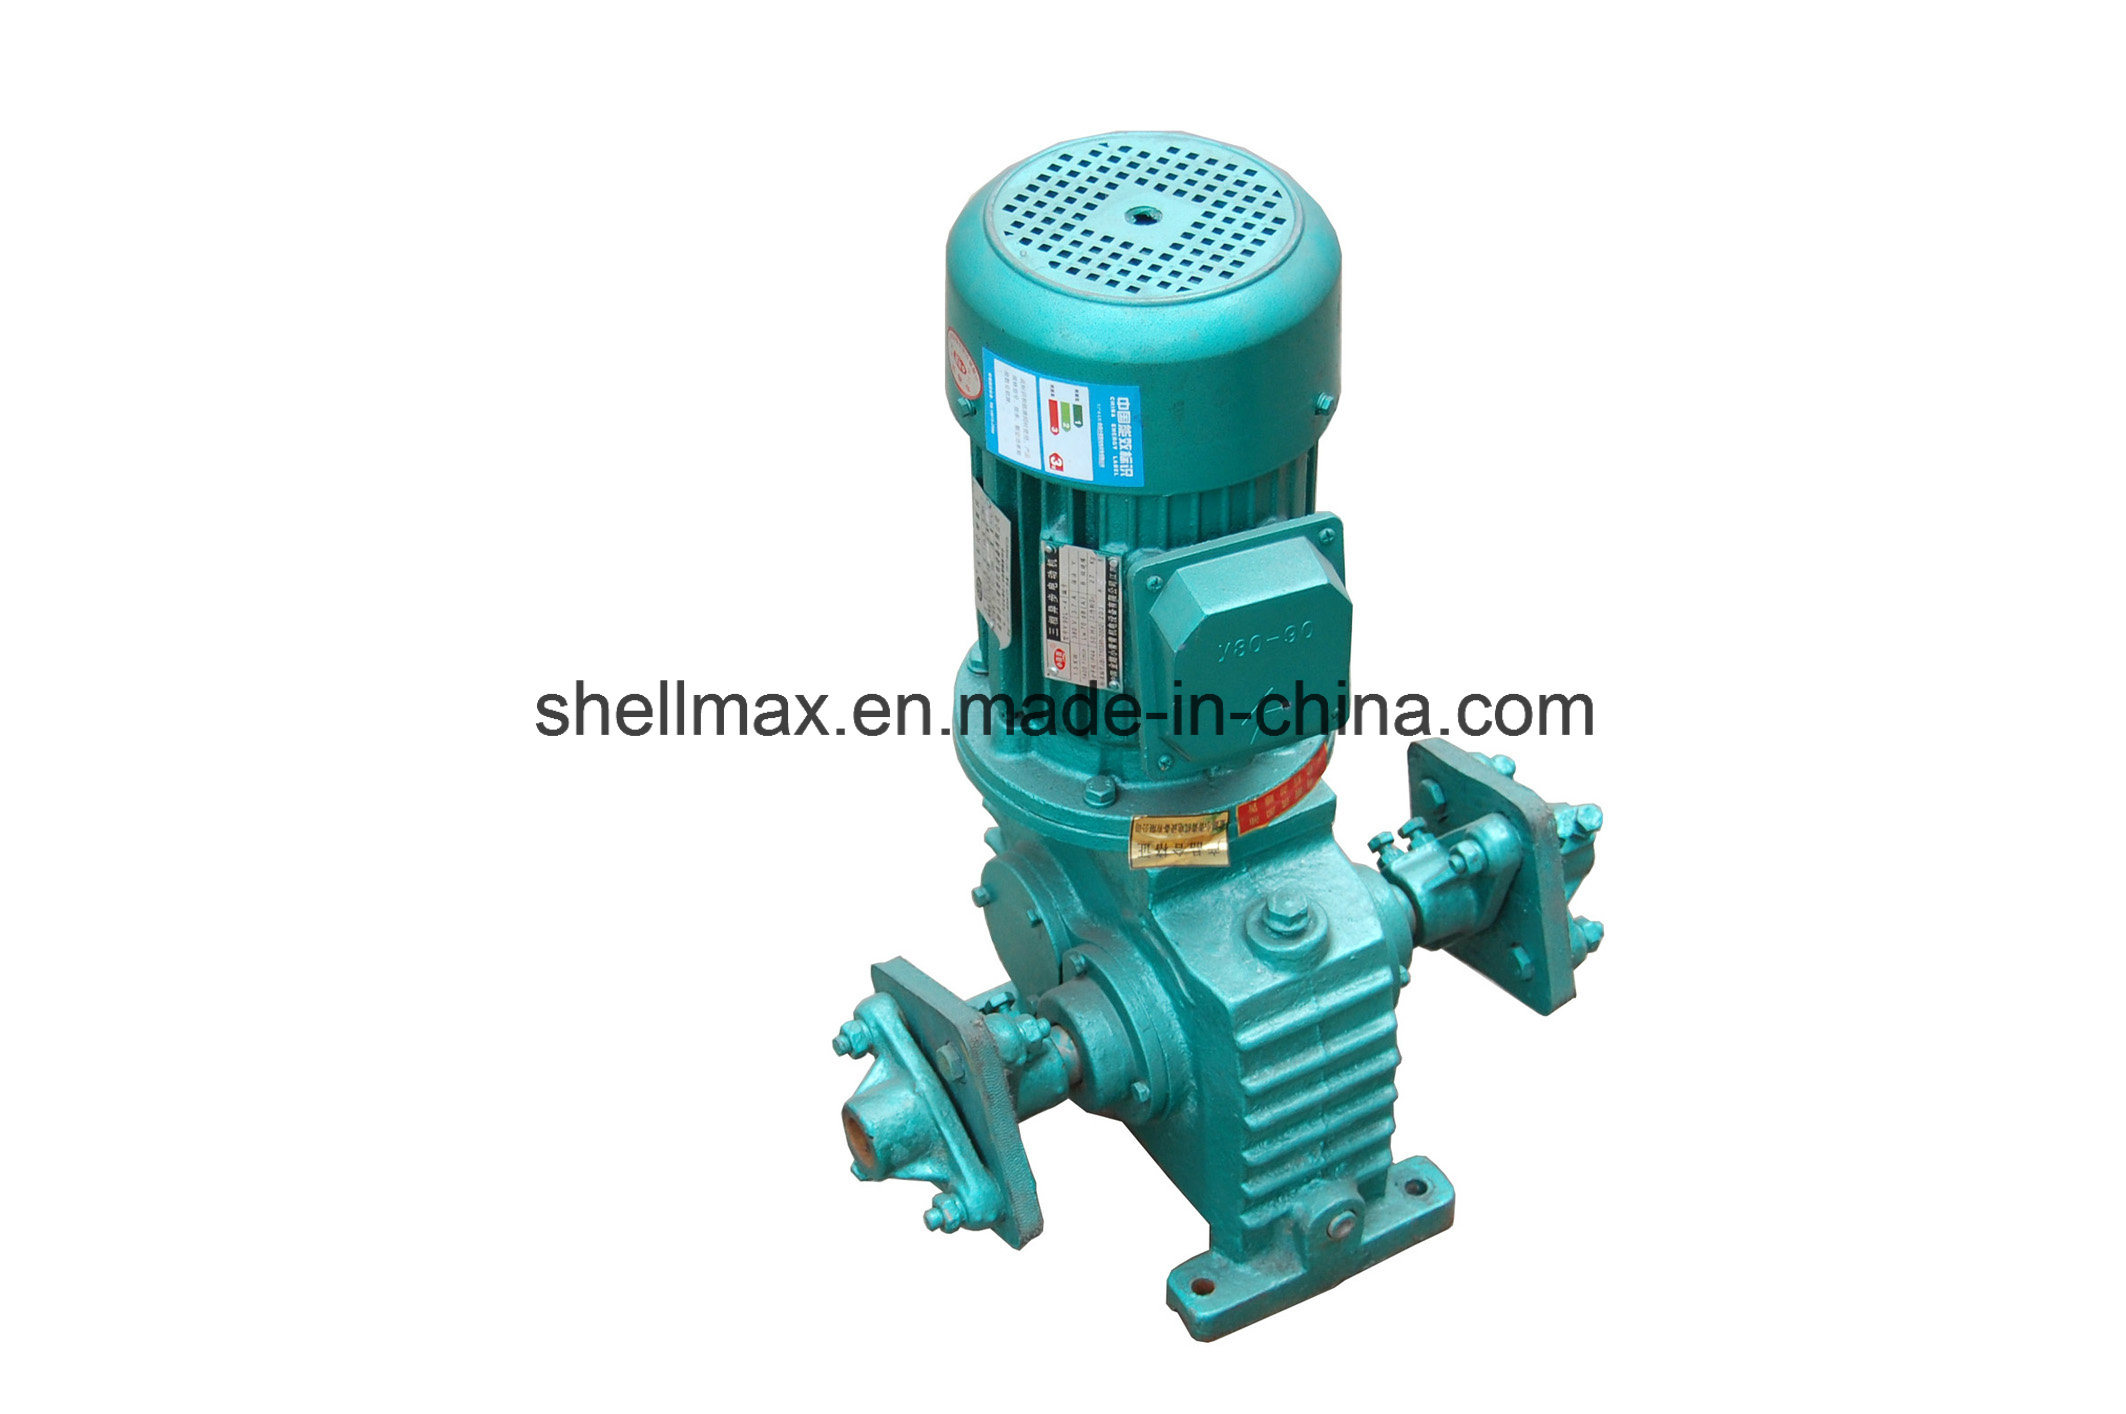 1.5HP 2 Paddle Wheel Shellmax Aerator